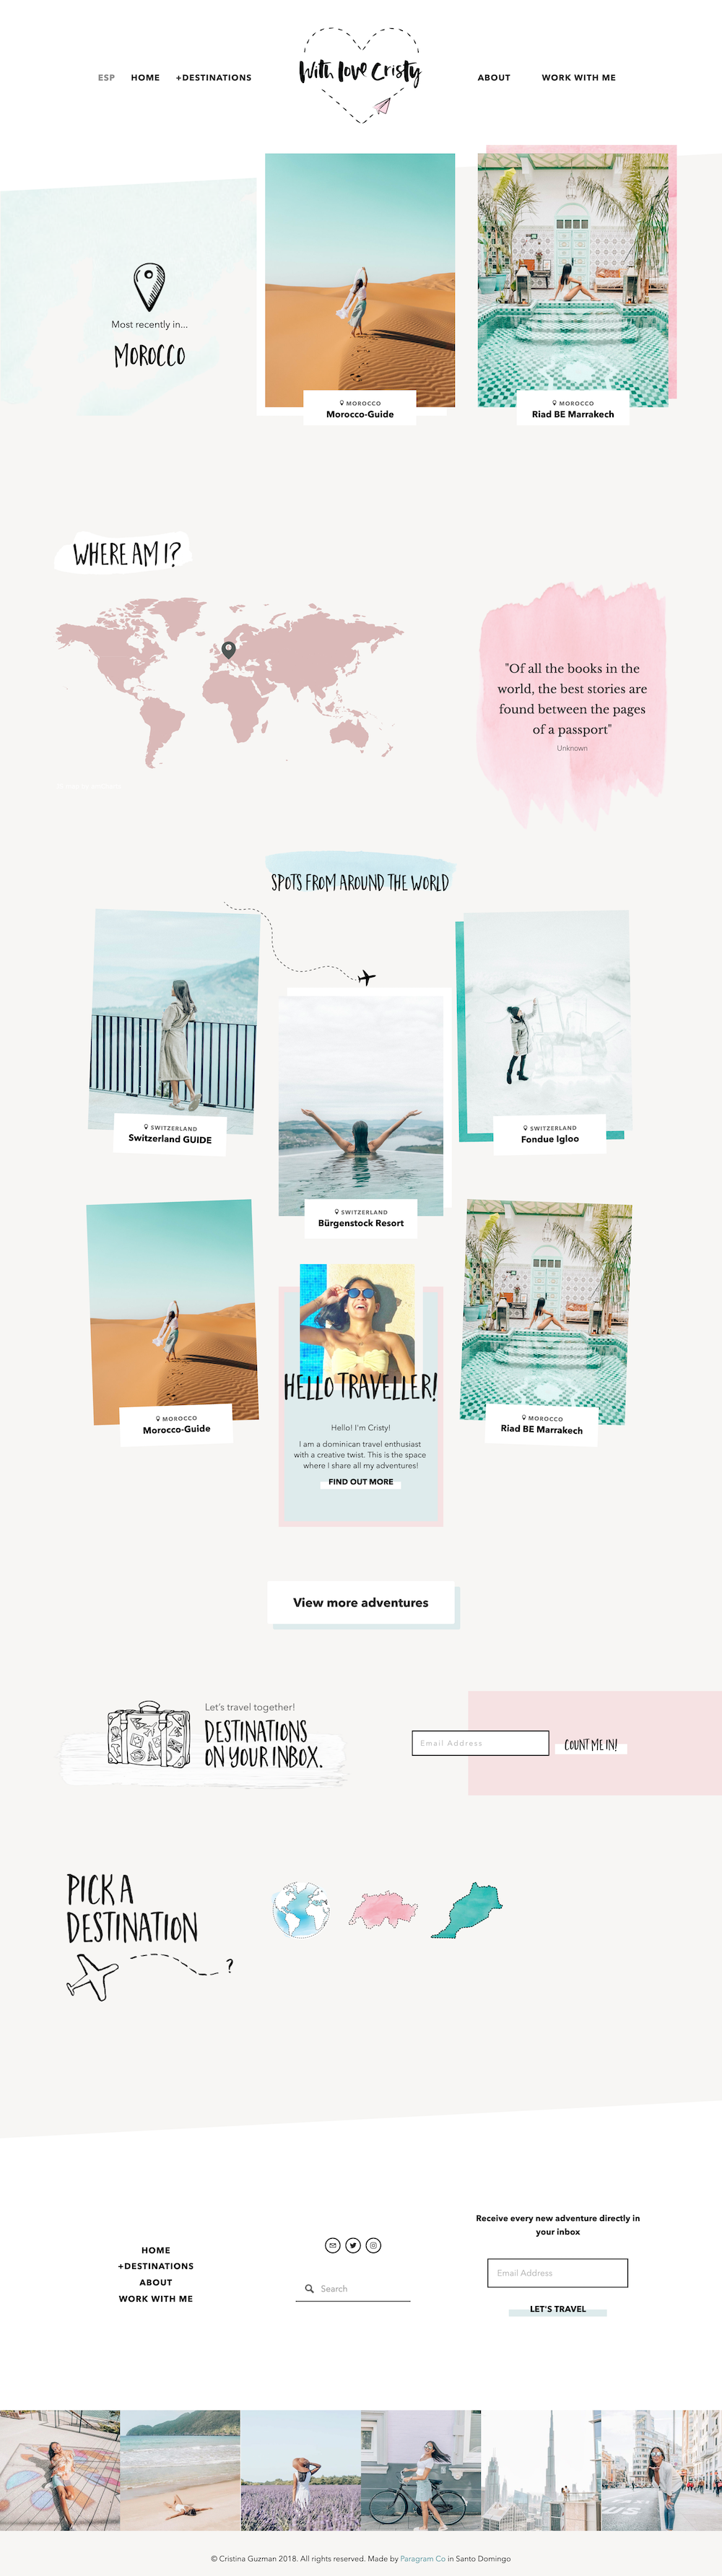 Travelling Instagram Influencer Blog Travel Squarespace Pastel Colors Soft Doodles Handwritten Fun Design Web